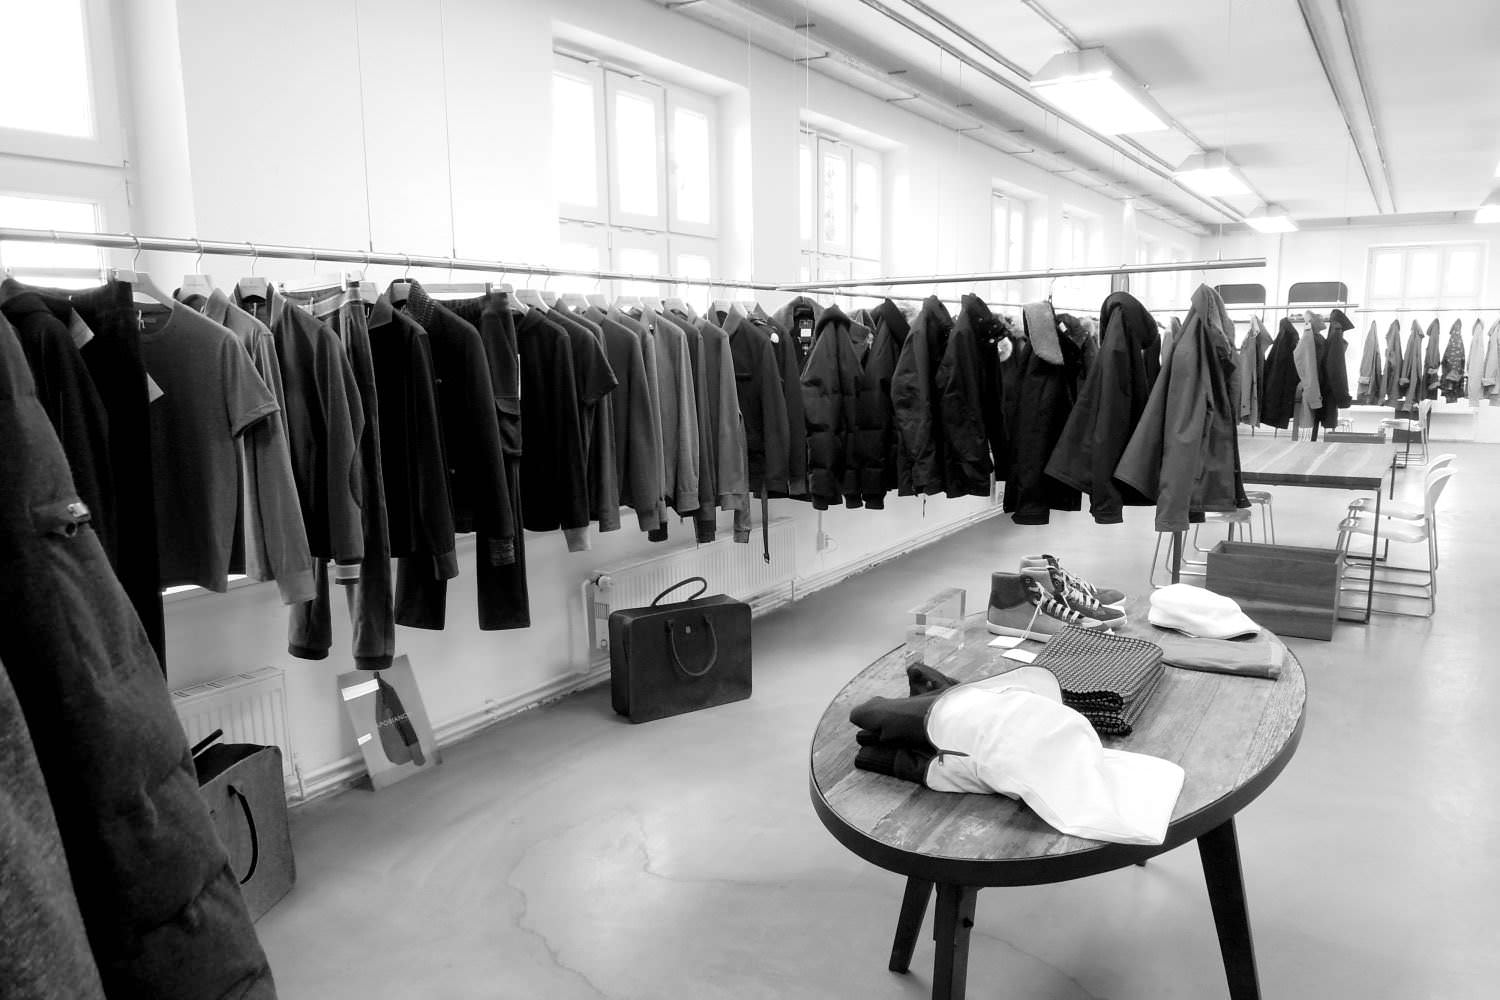 Clothing rail system for showrooms